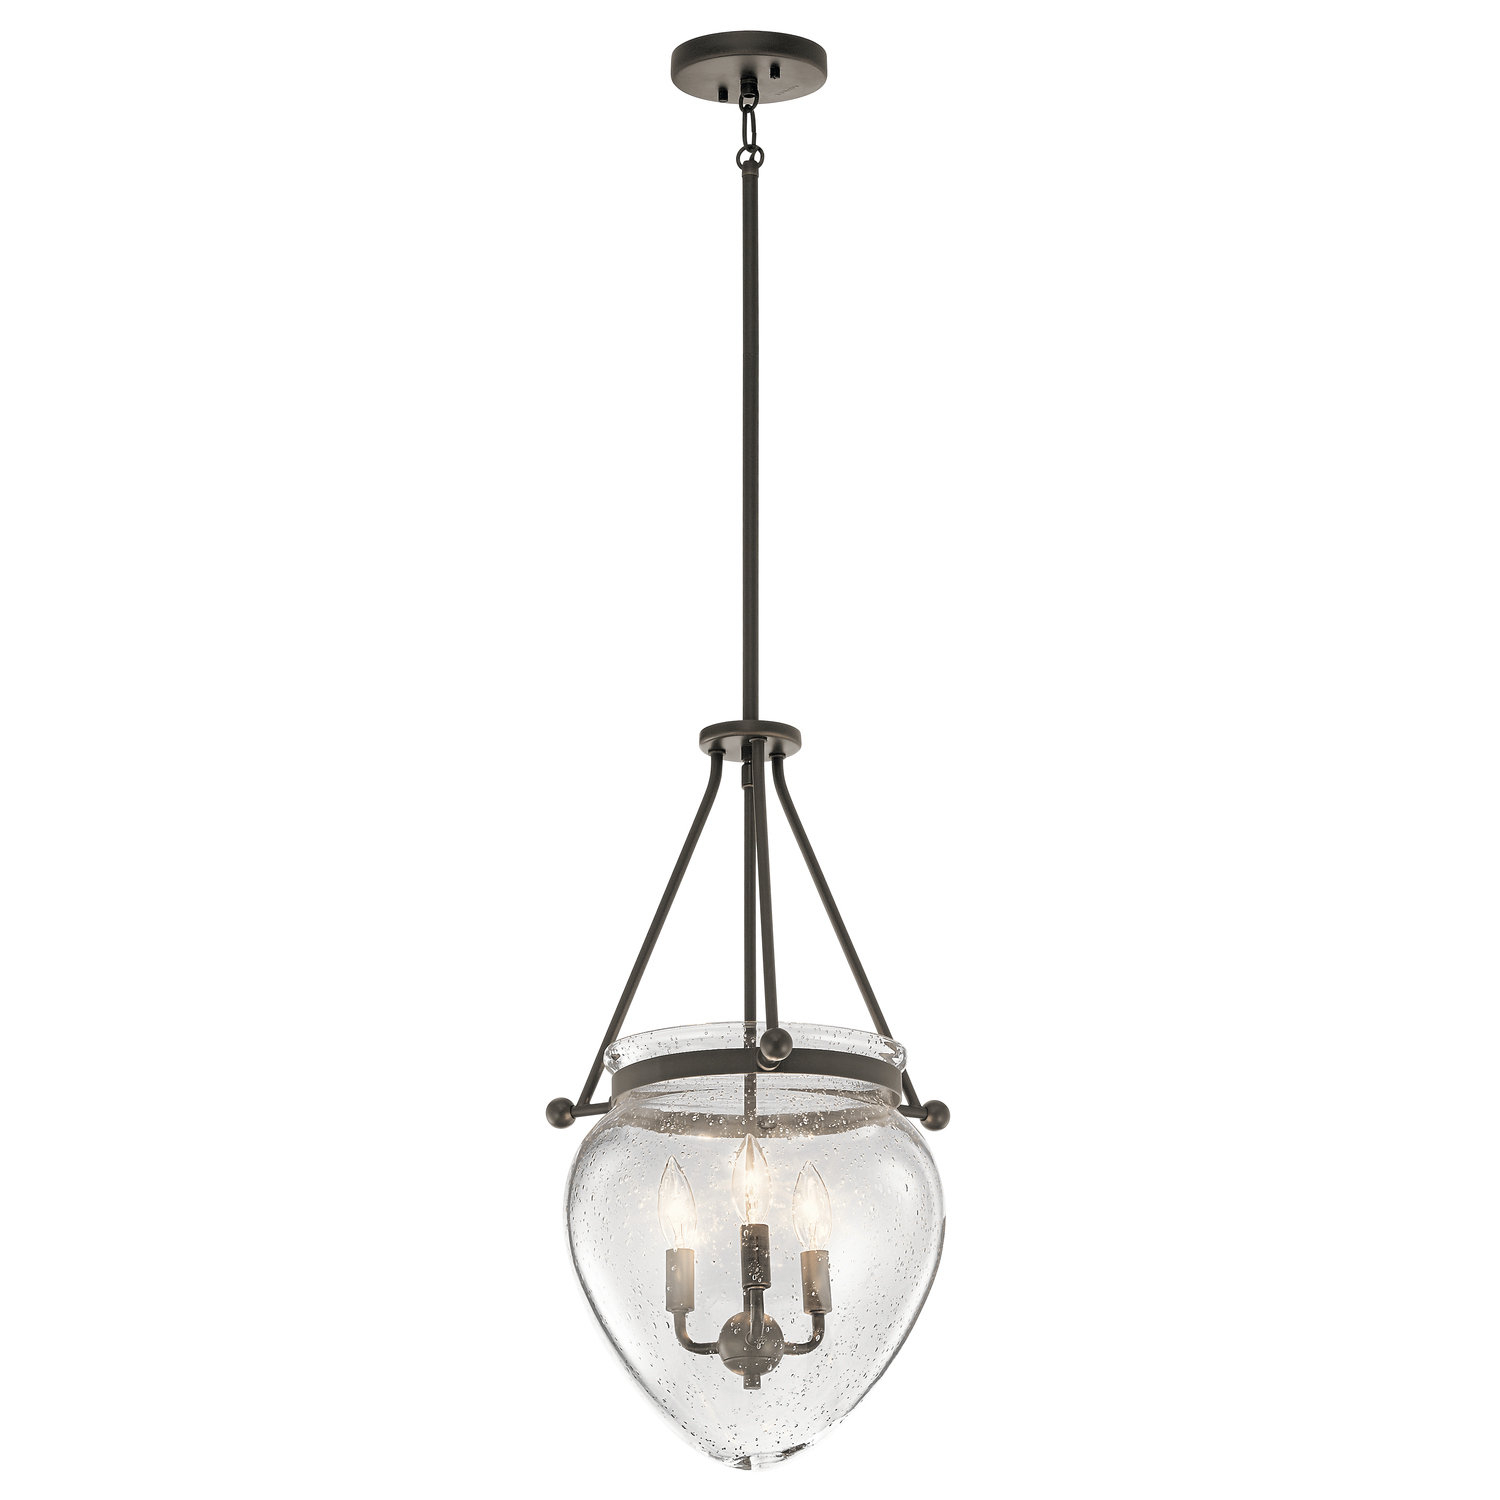 Edgemoor 3 Light Single Urn Pendant With Regard To 3 Light Single Urn Pendants (Gallery 5 of 30)